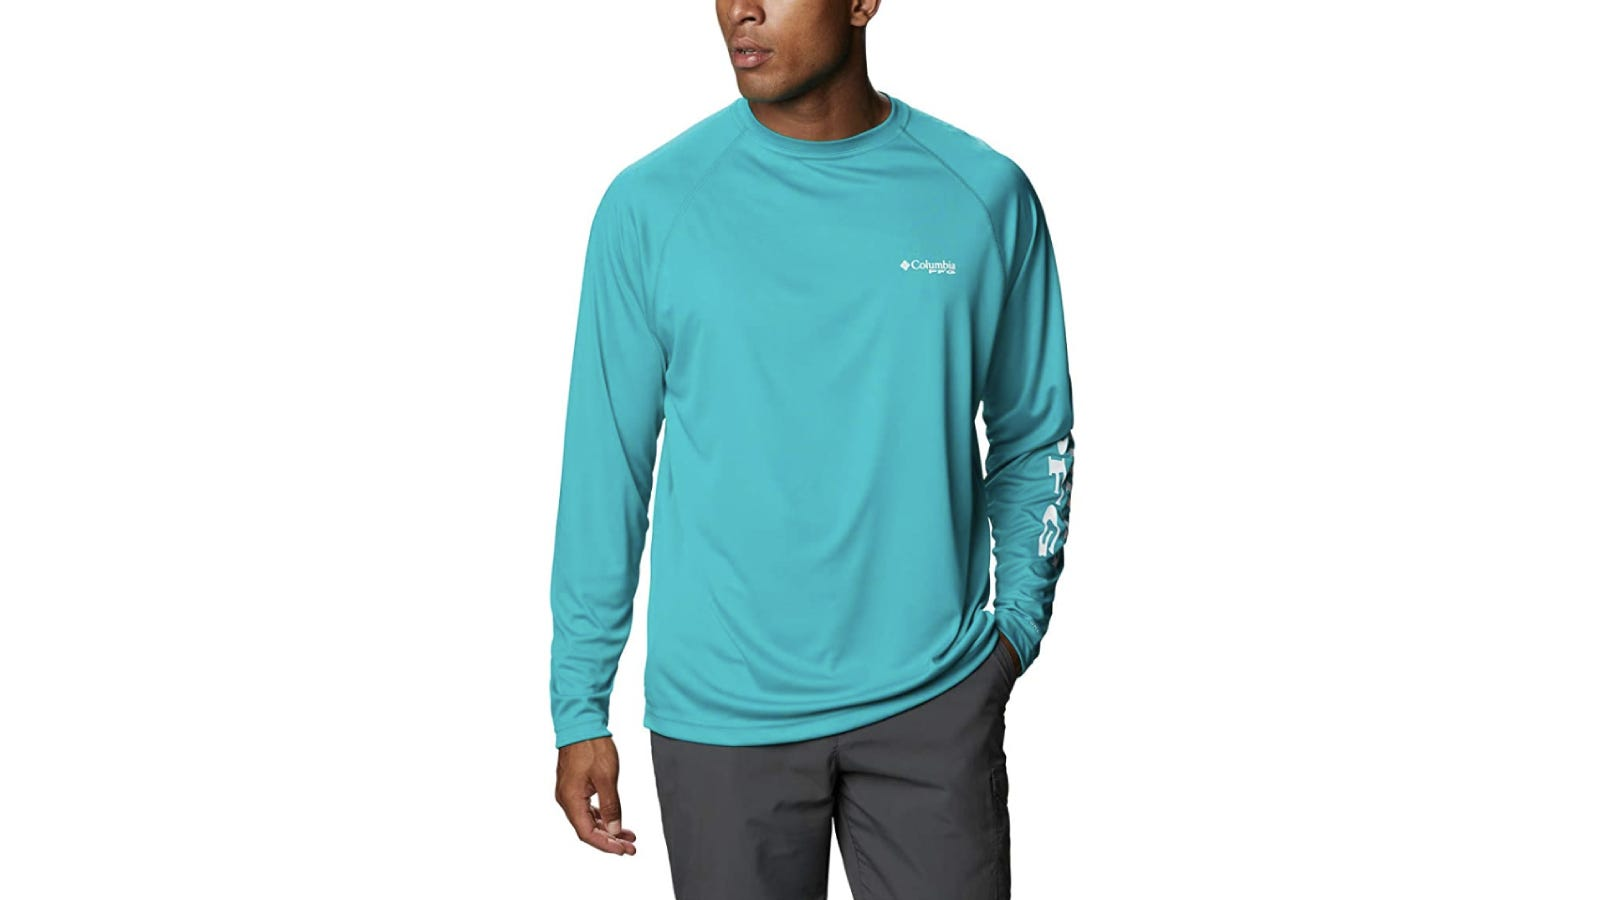 A model at centerframe wears an aqua blue, long-sleeve shirt that's crafted from dri-fit material and features name branding on the left side chest and arm sleeve.